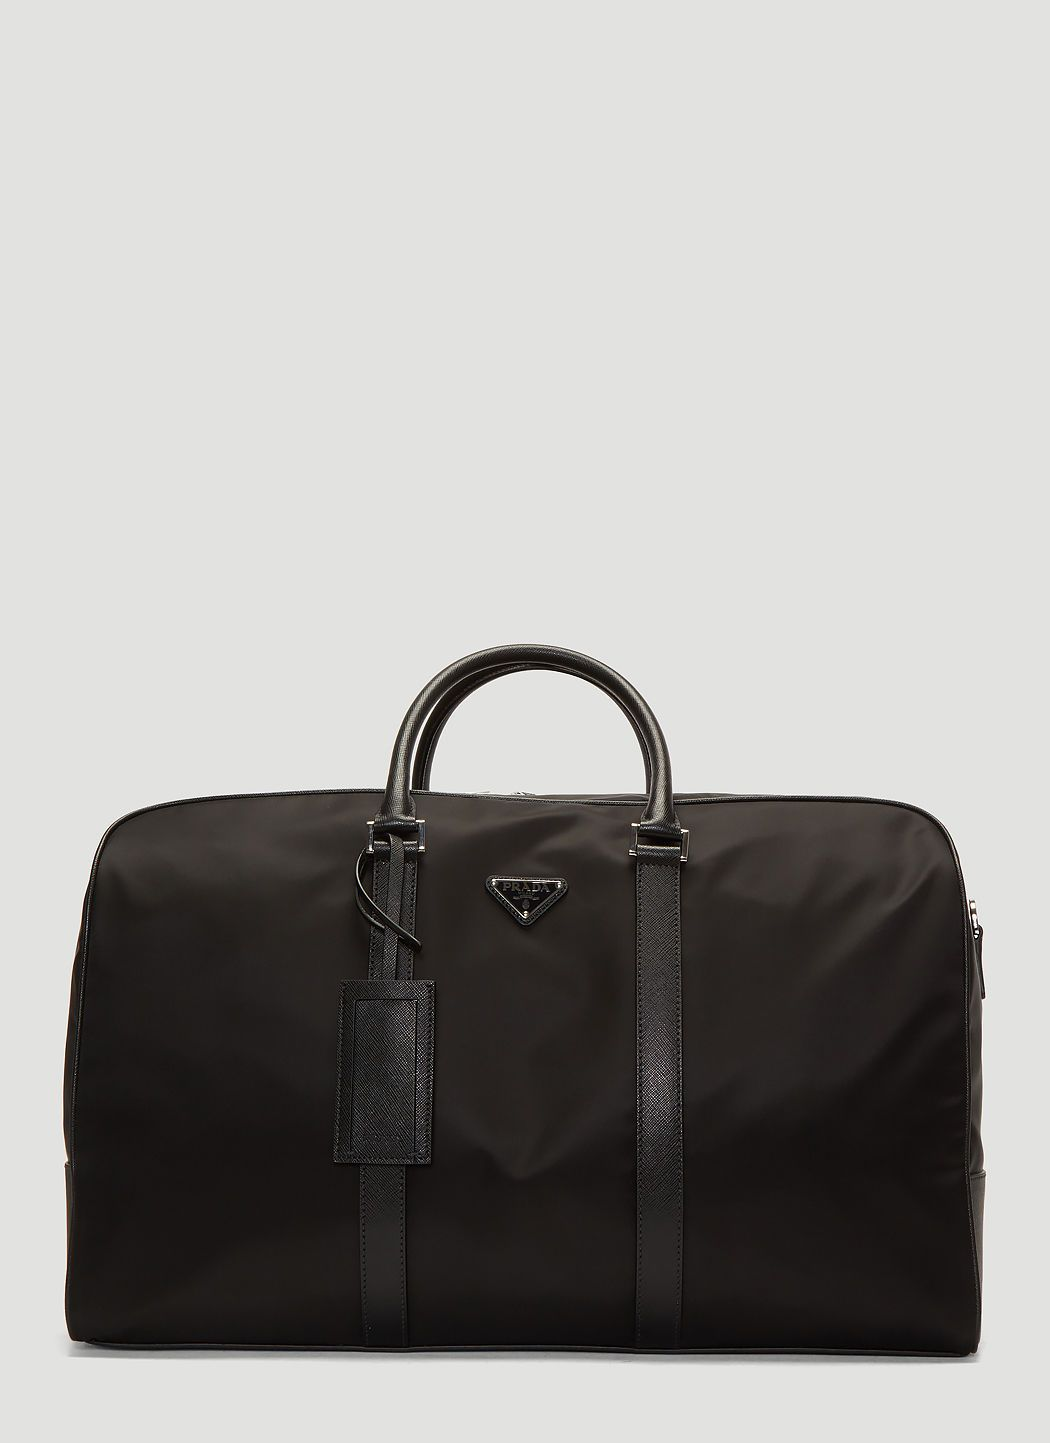 Nylon and Saffiano Leather Duffle Bag in 2019 | D E S I R E